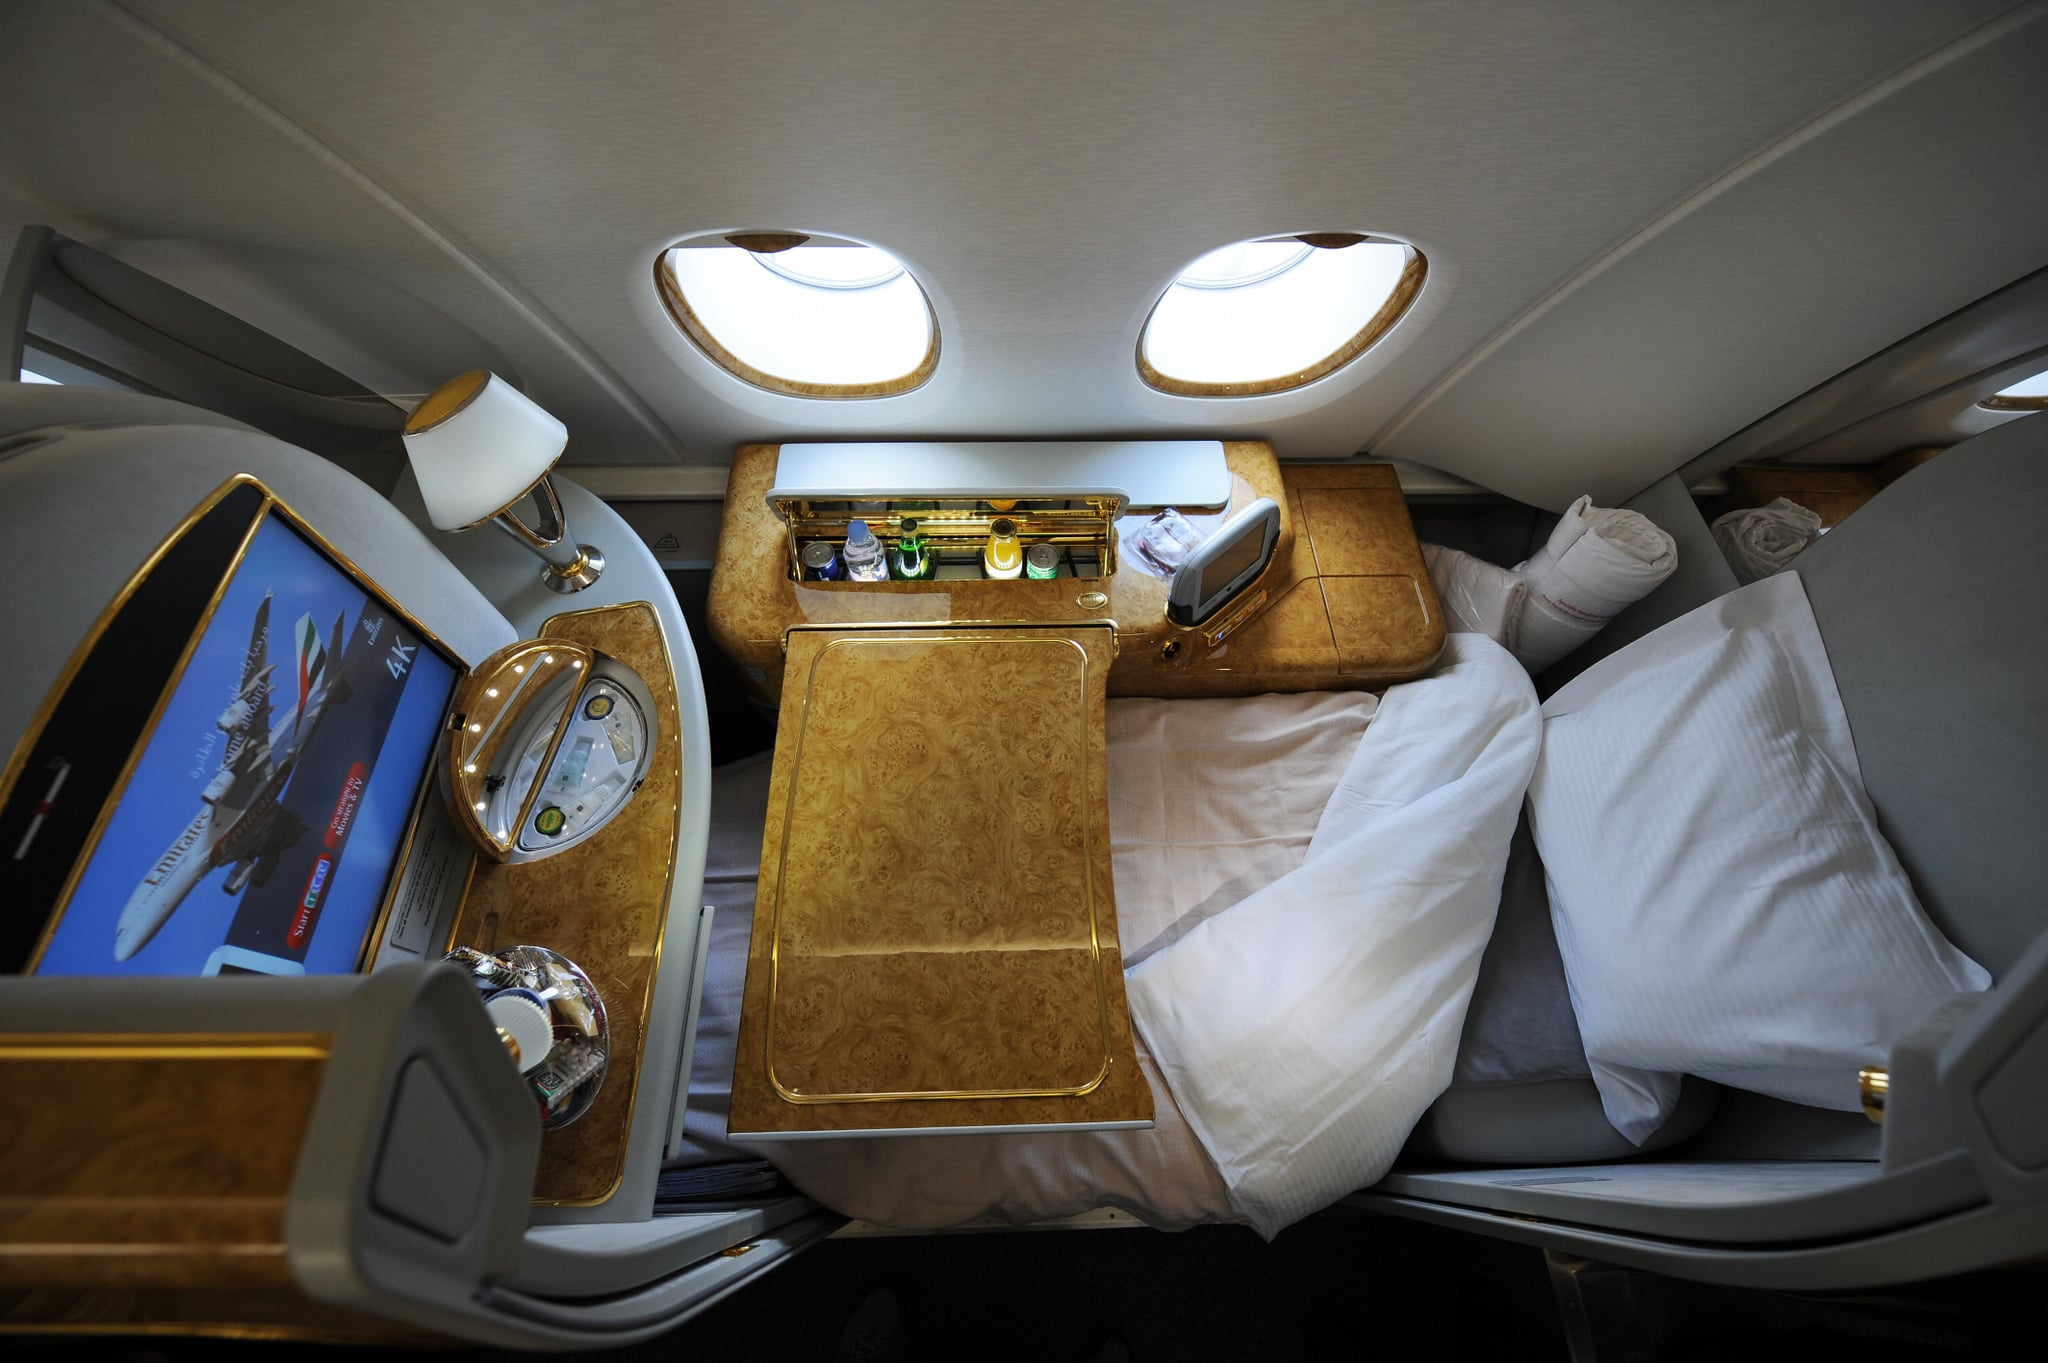 Emirates airlines airbus a380 popsugar career and finance for Airbus a380 emirates interior